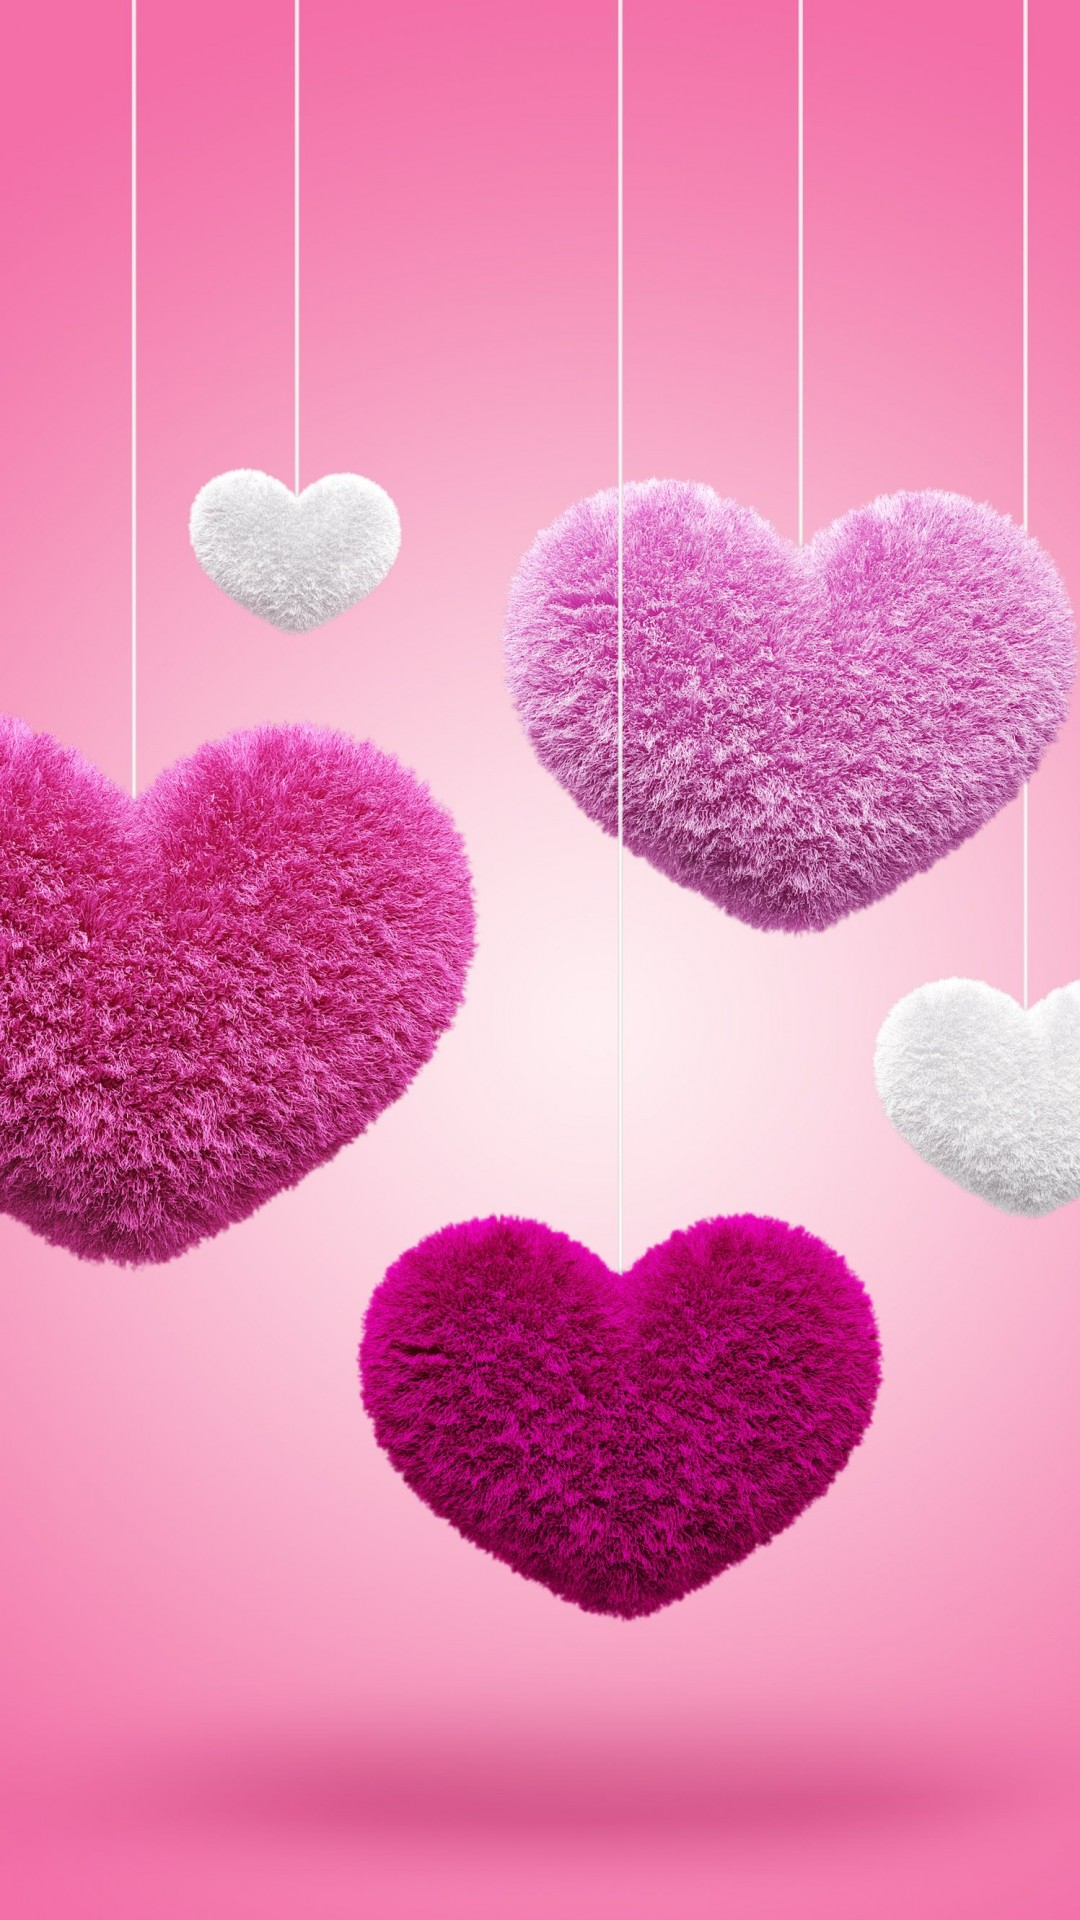 Fluffy Hearts Wallpaper for Motorola Moto X